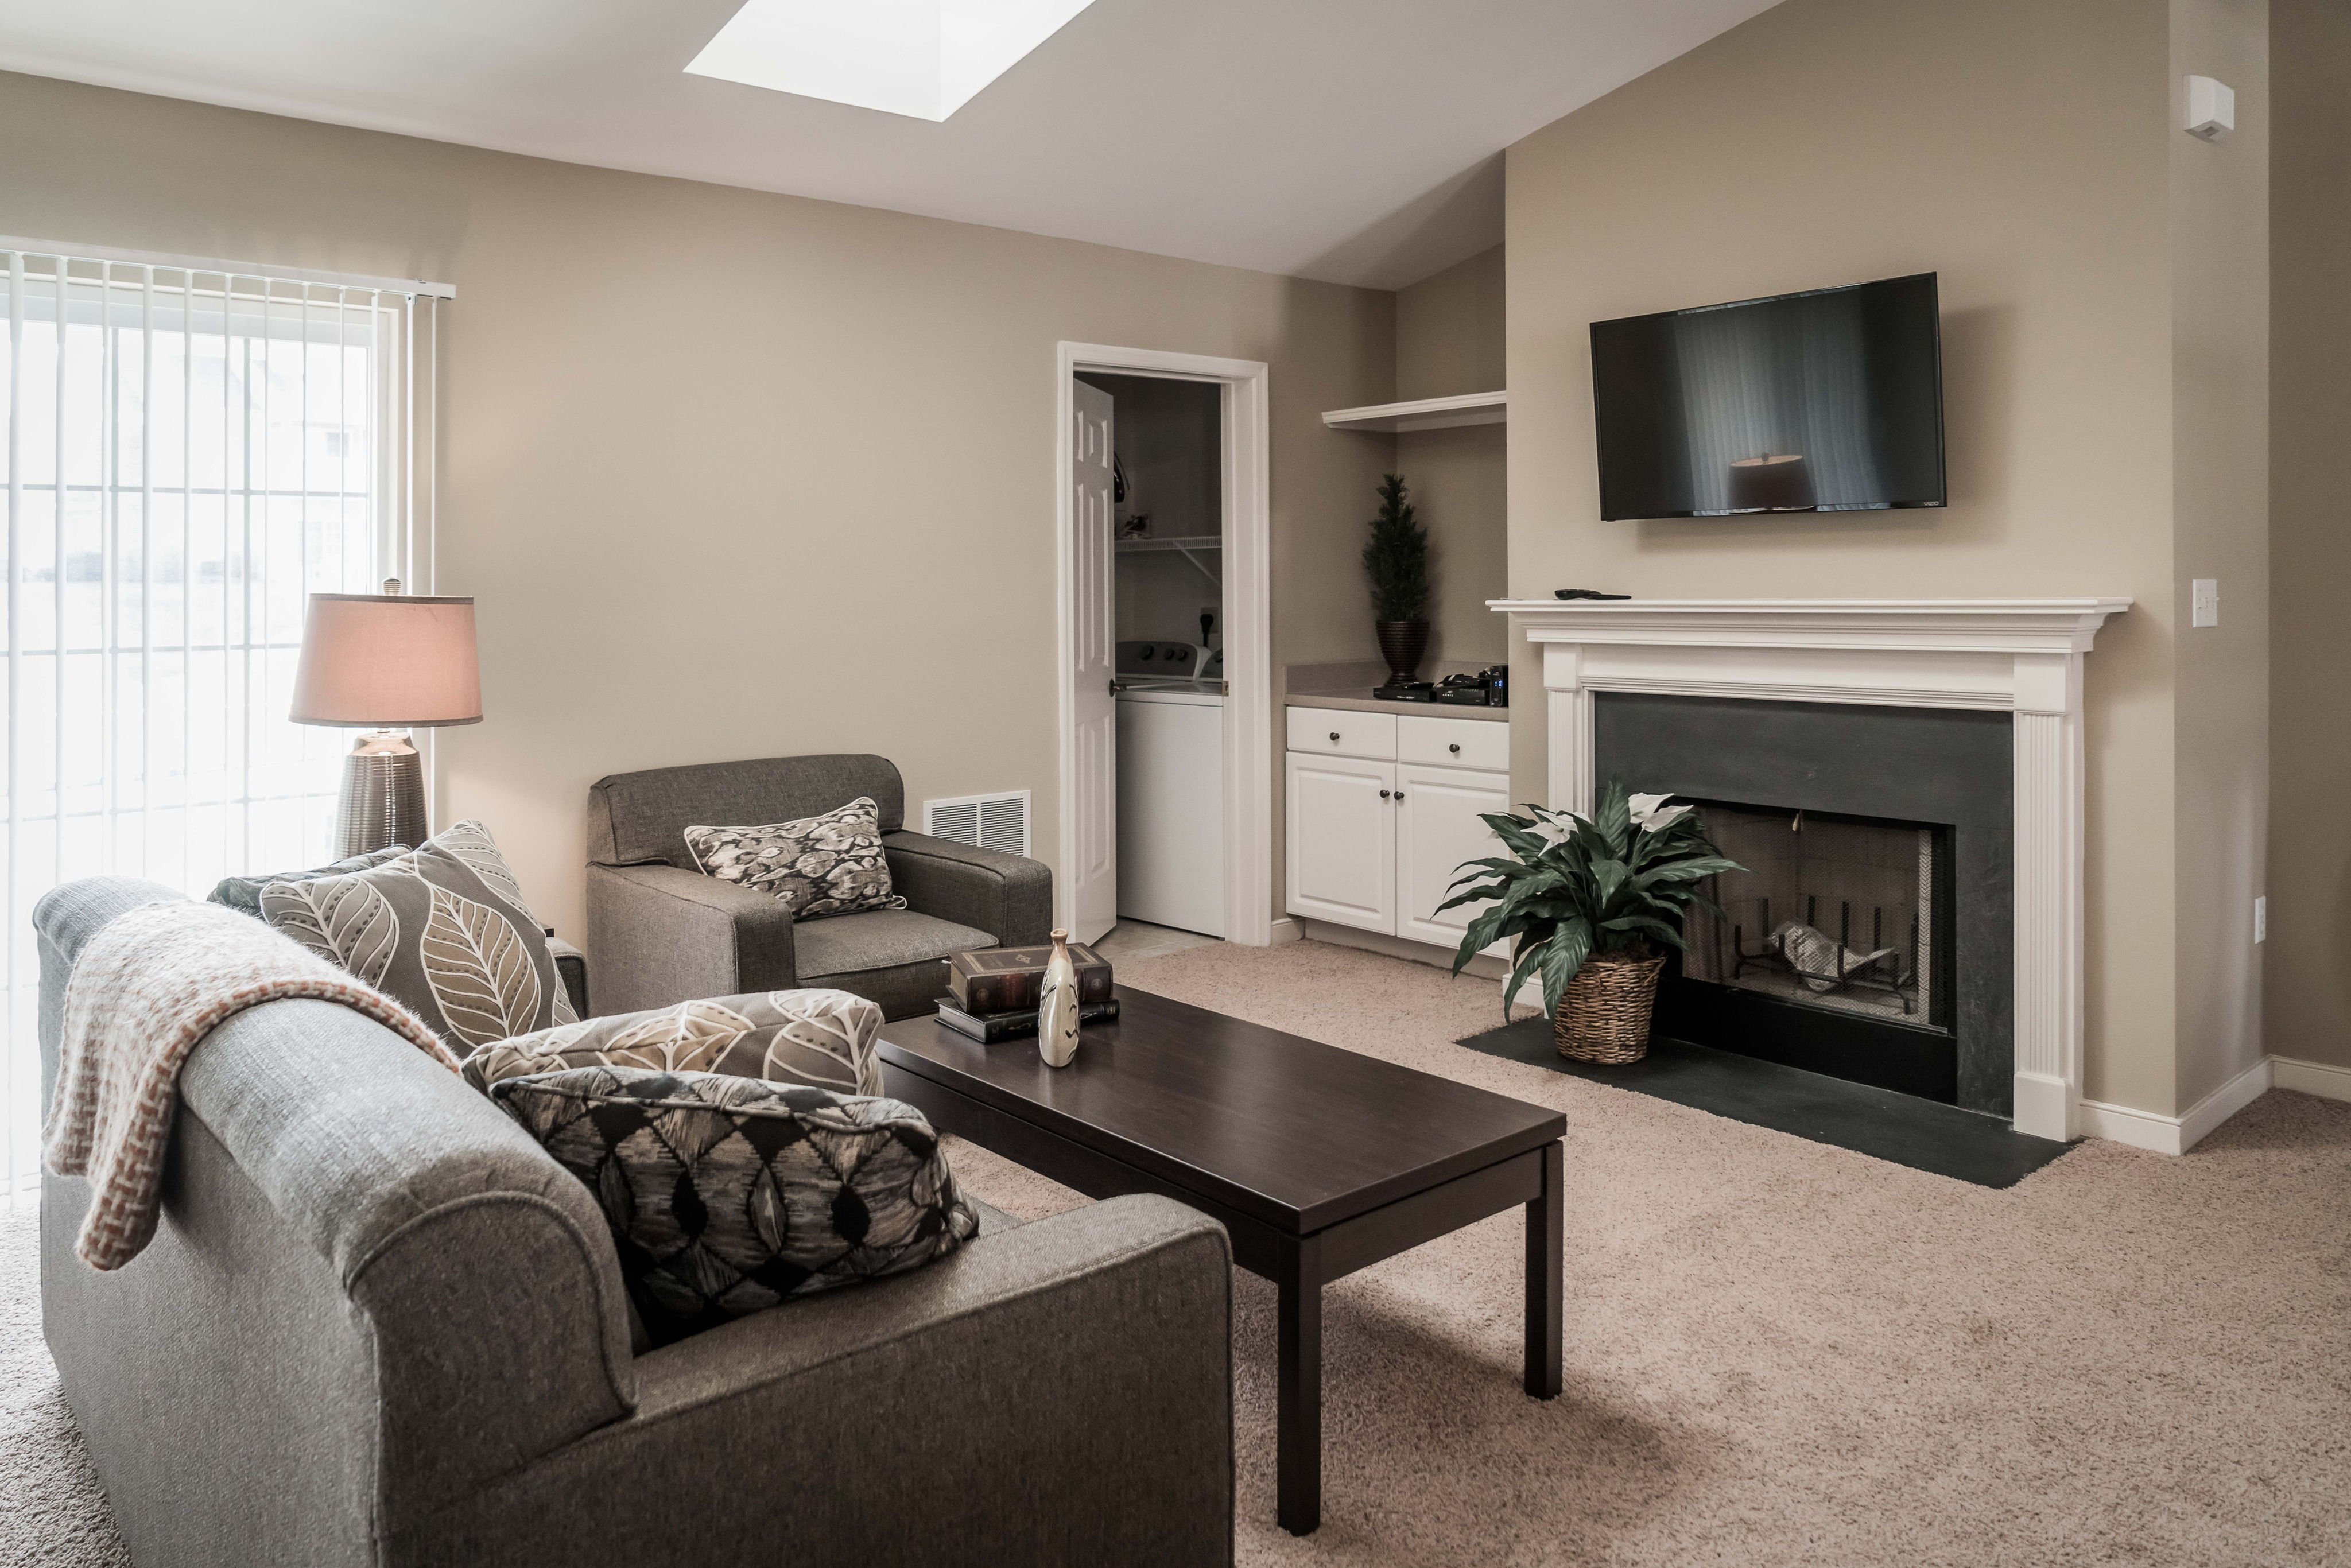 Image of 9 foot ceilings for Highlands at Warwick